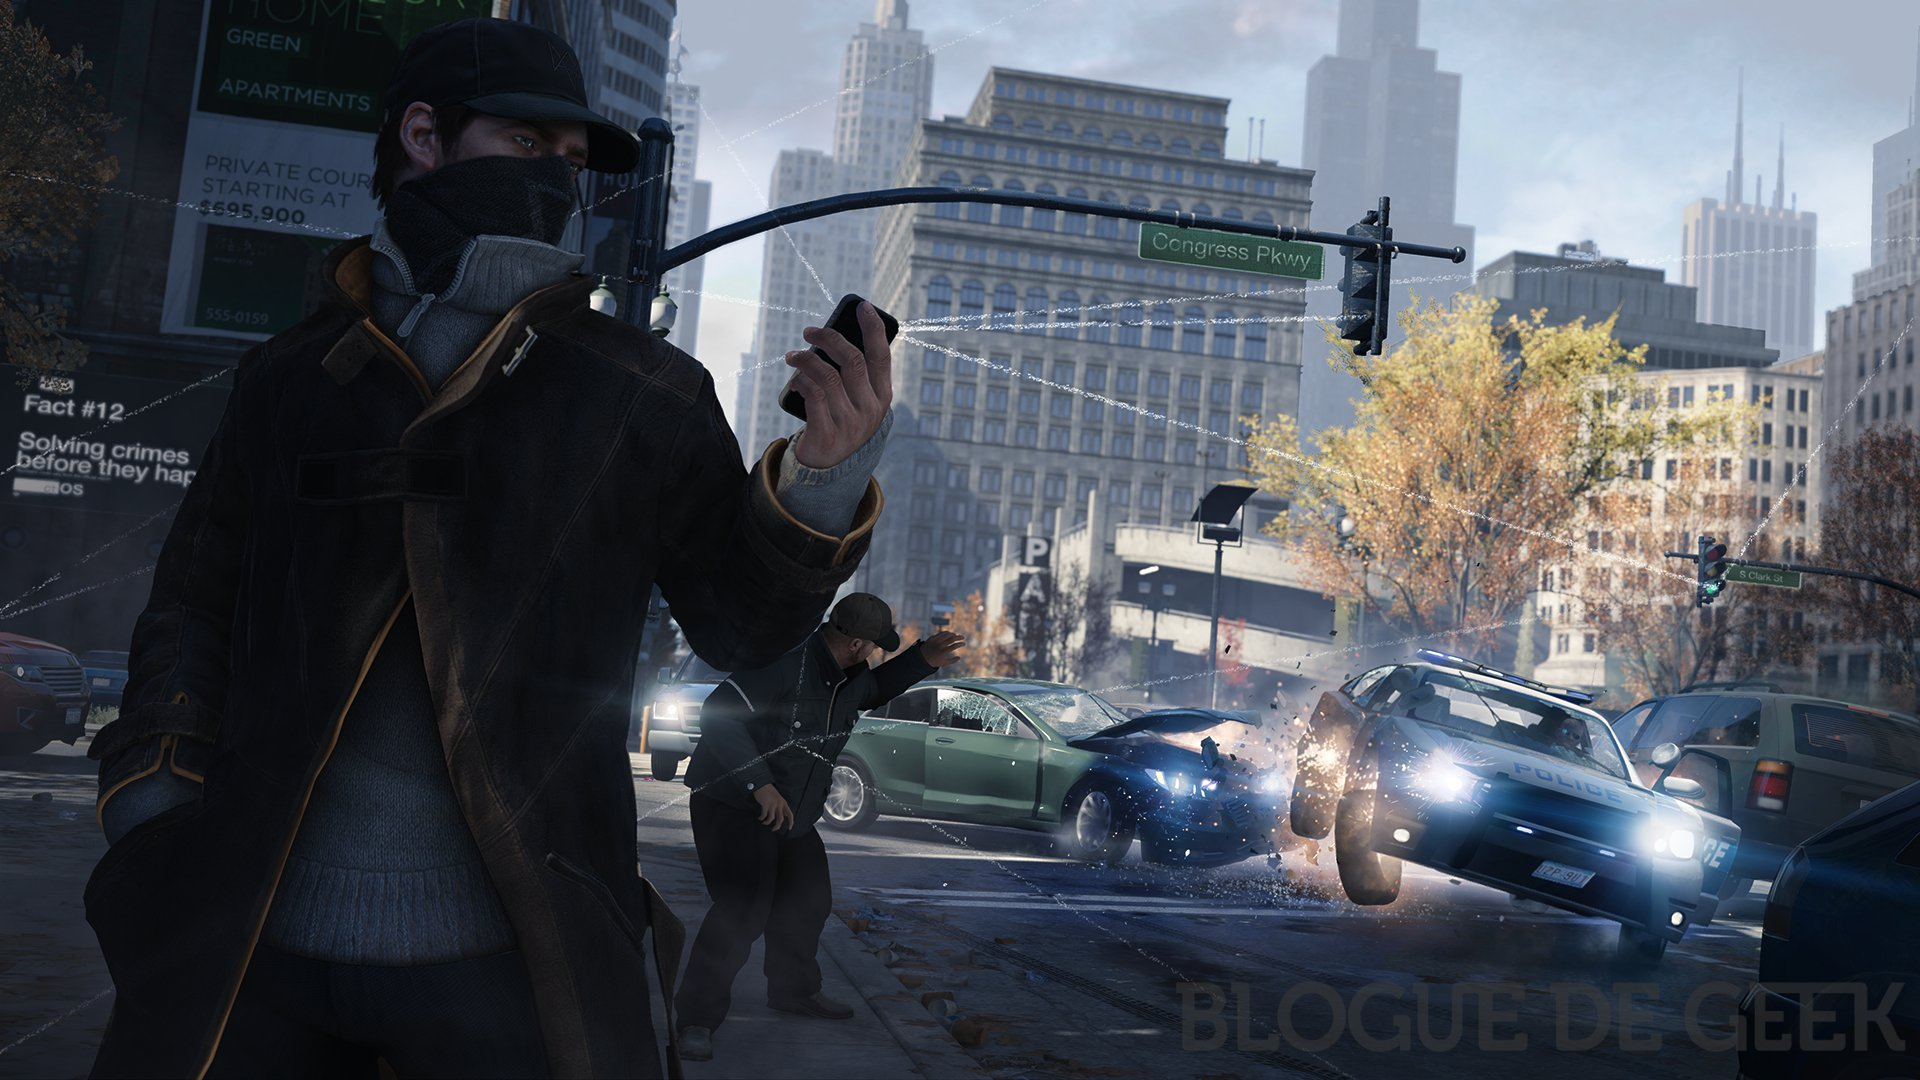 WatchDogs Police Block TrafficLight imp - Nouvelles images pour Watch_Dogs!